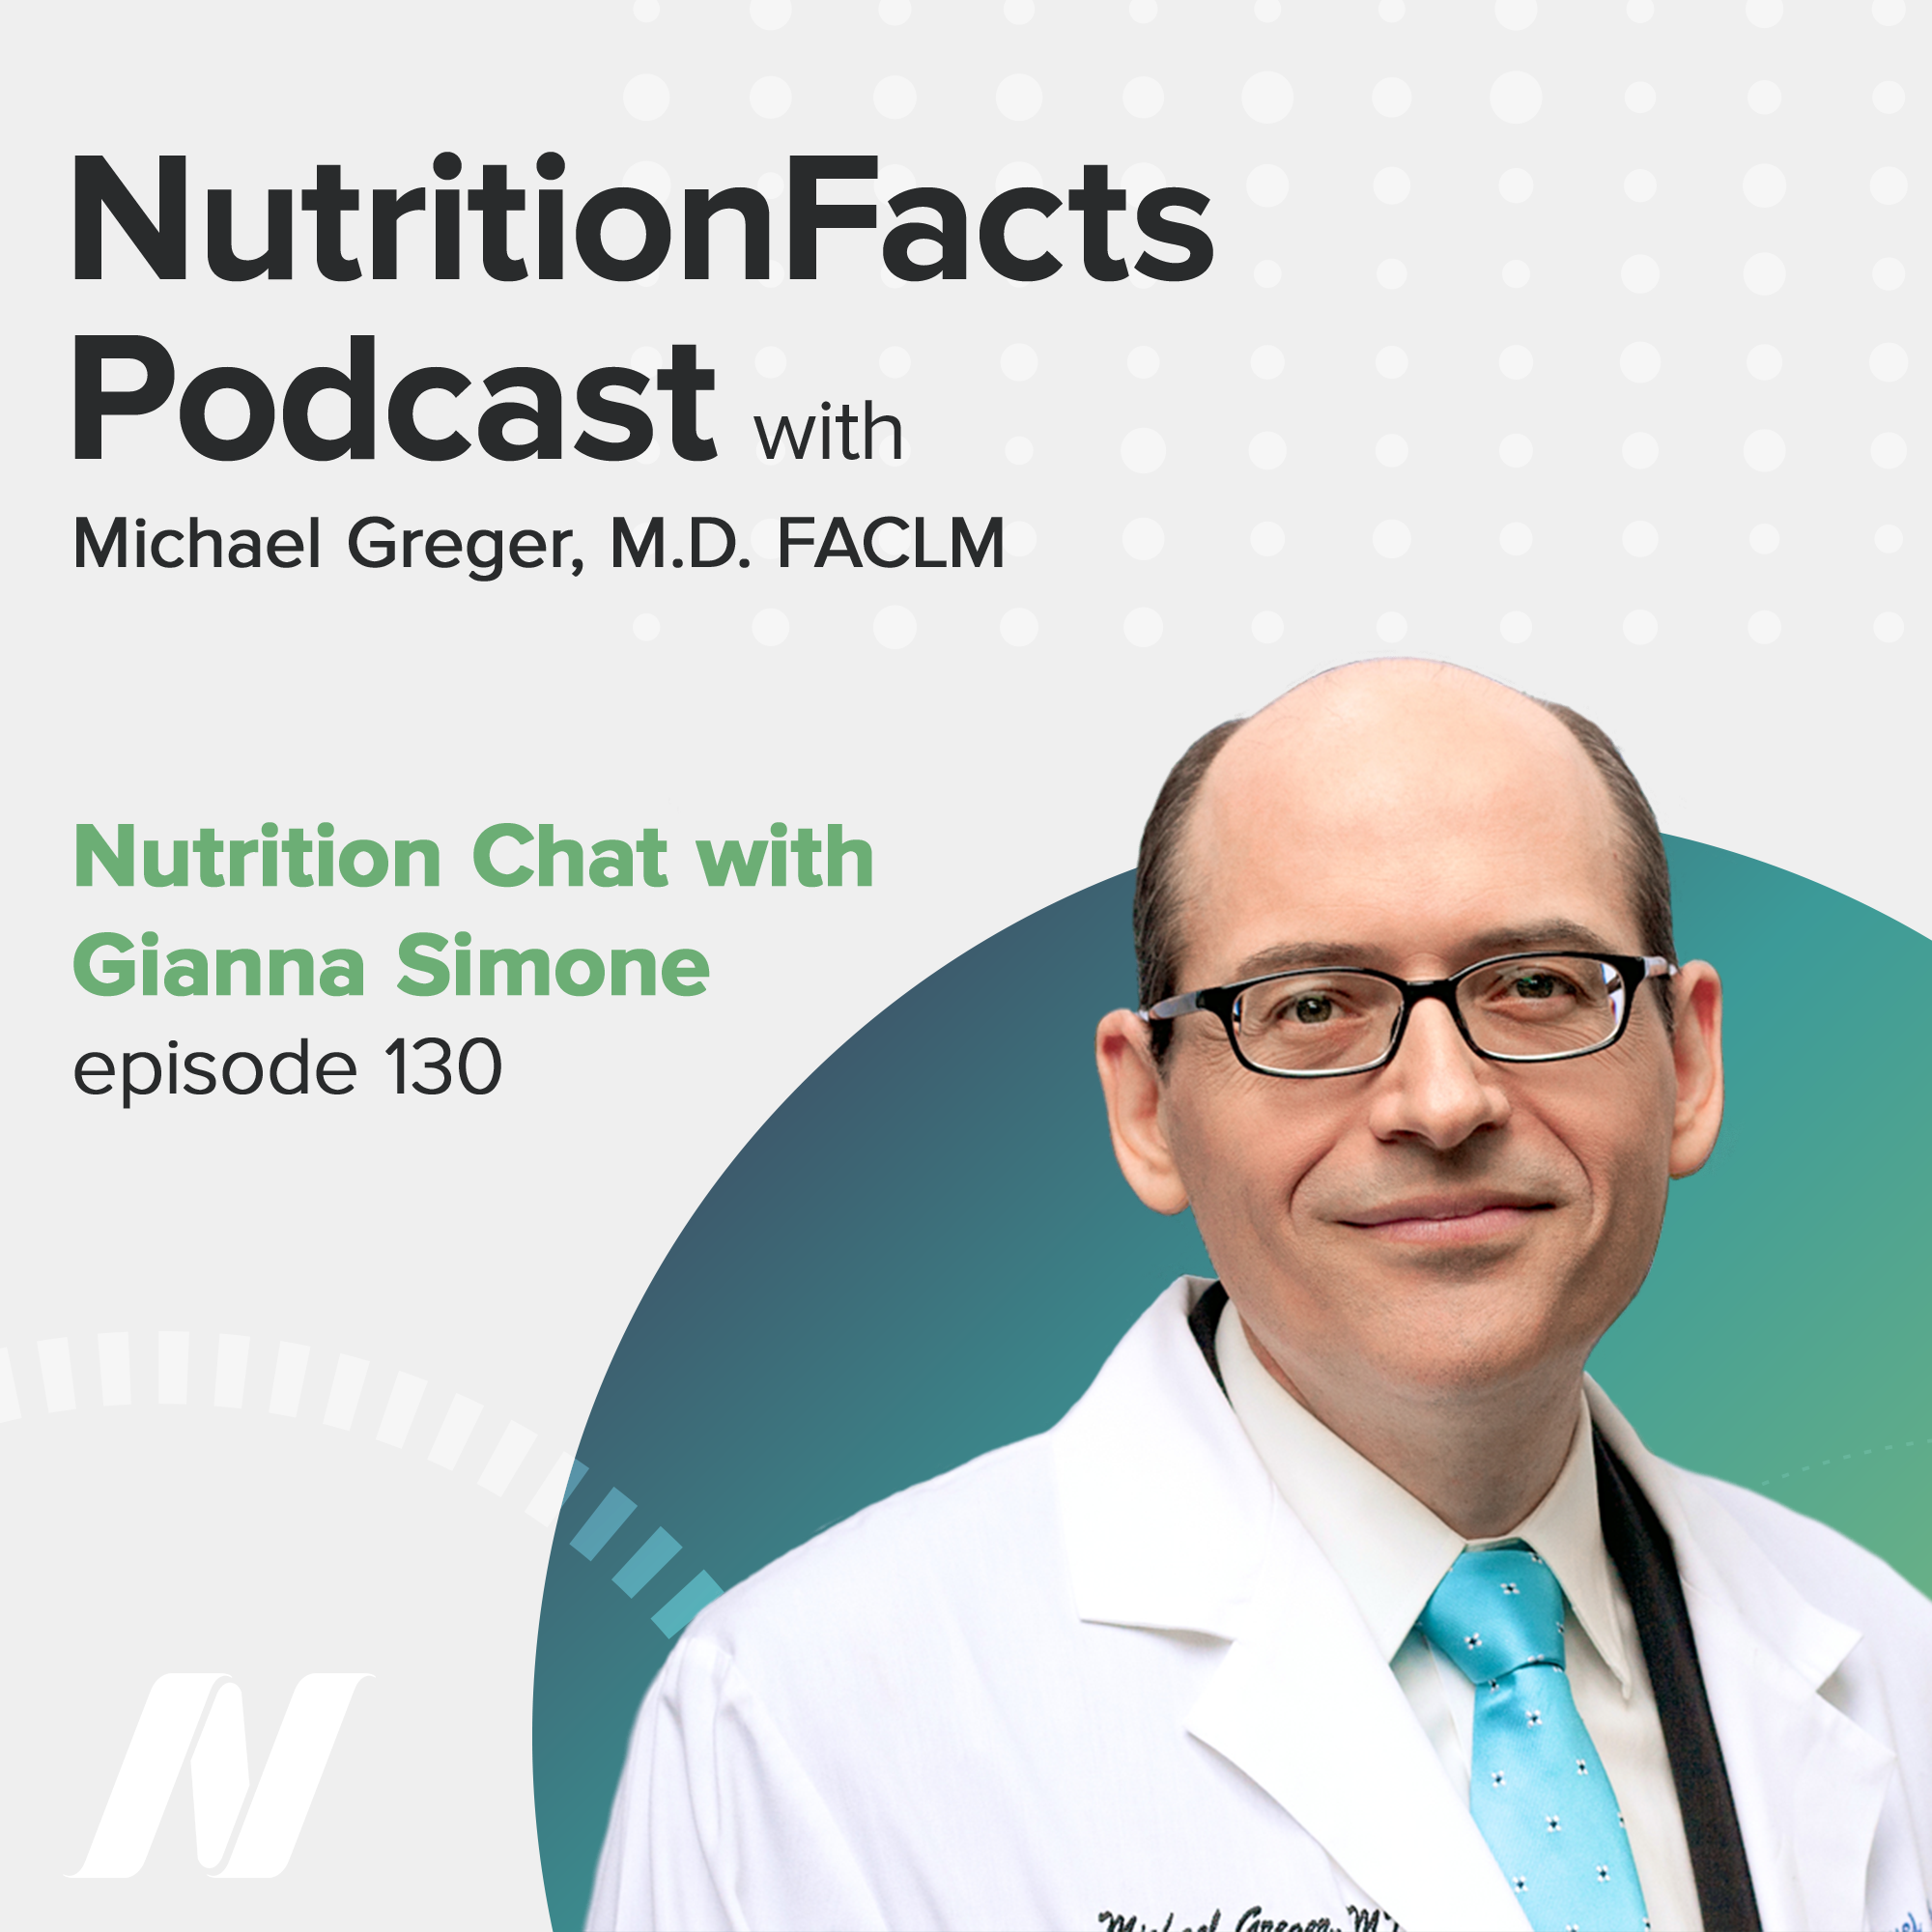 Nutrition Chat wtih Gianna Simone